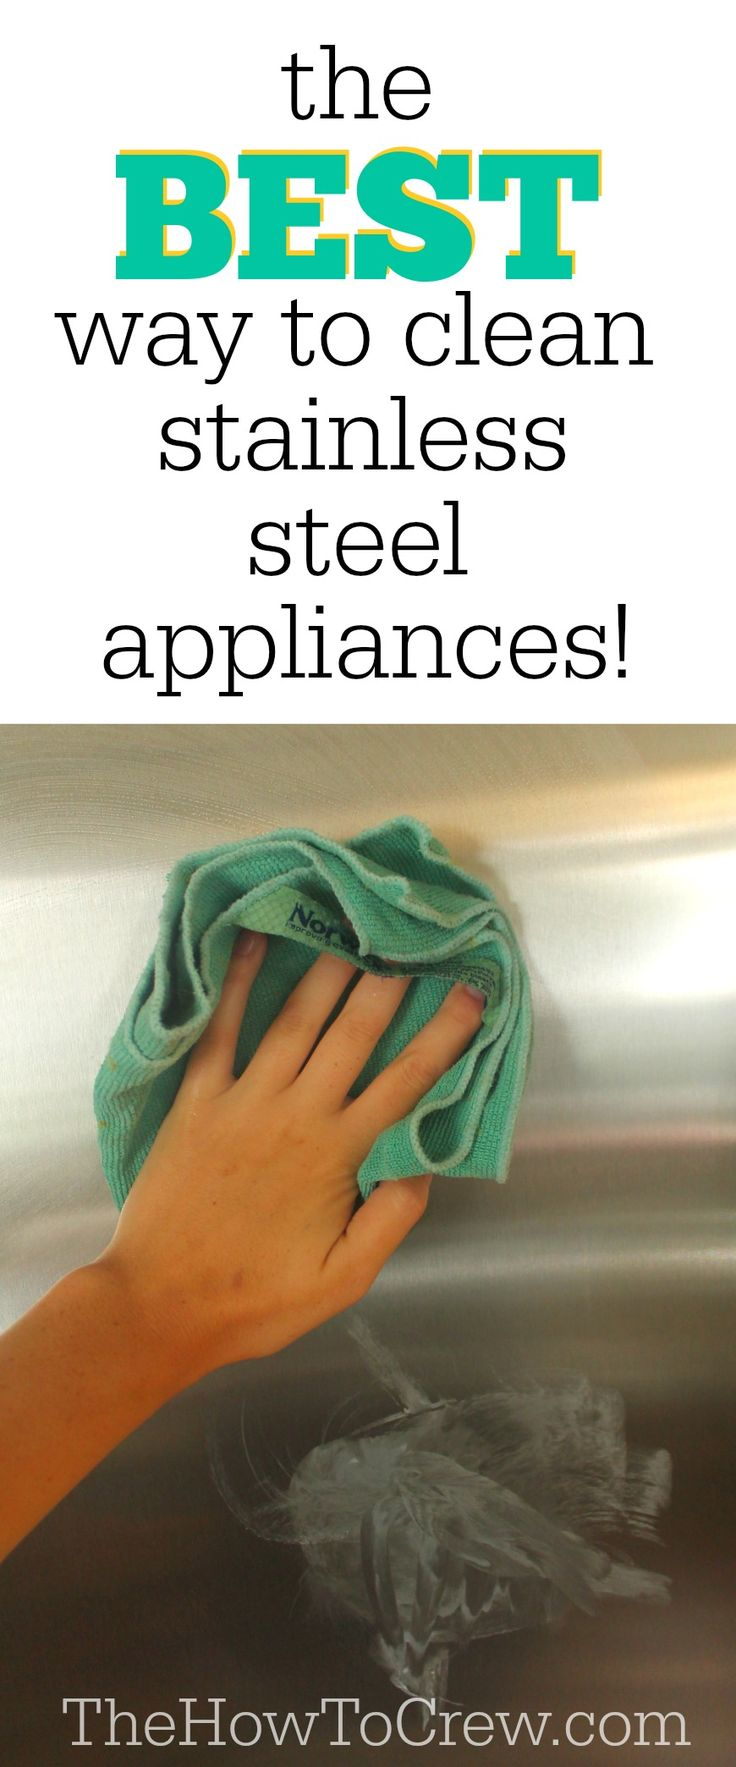 The Best Way To Clean Stainless Steel Appliances From